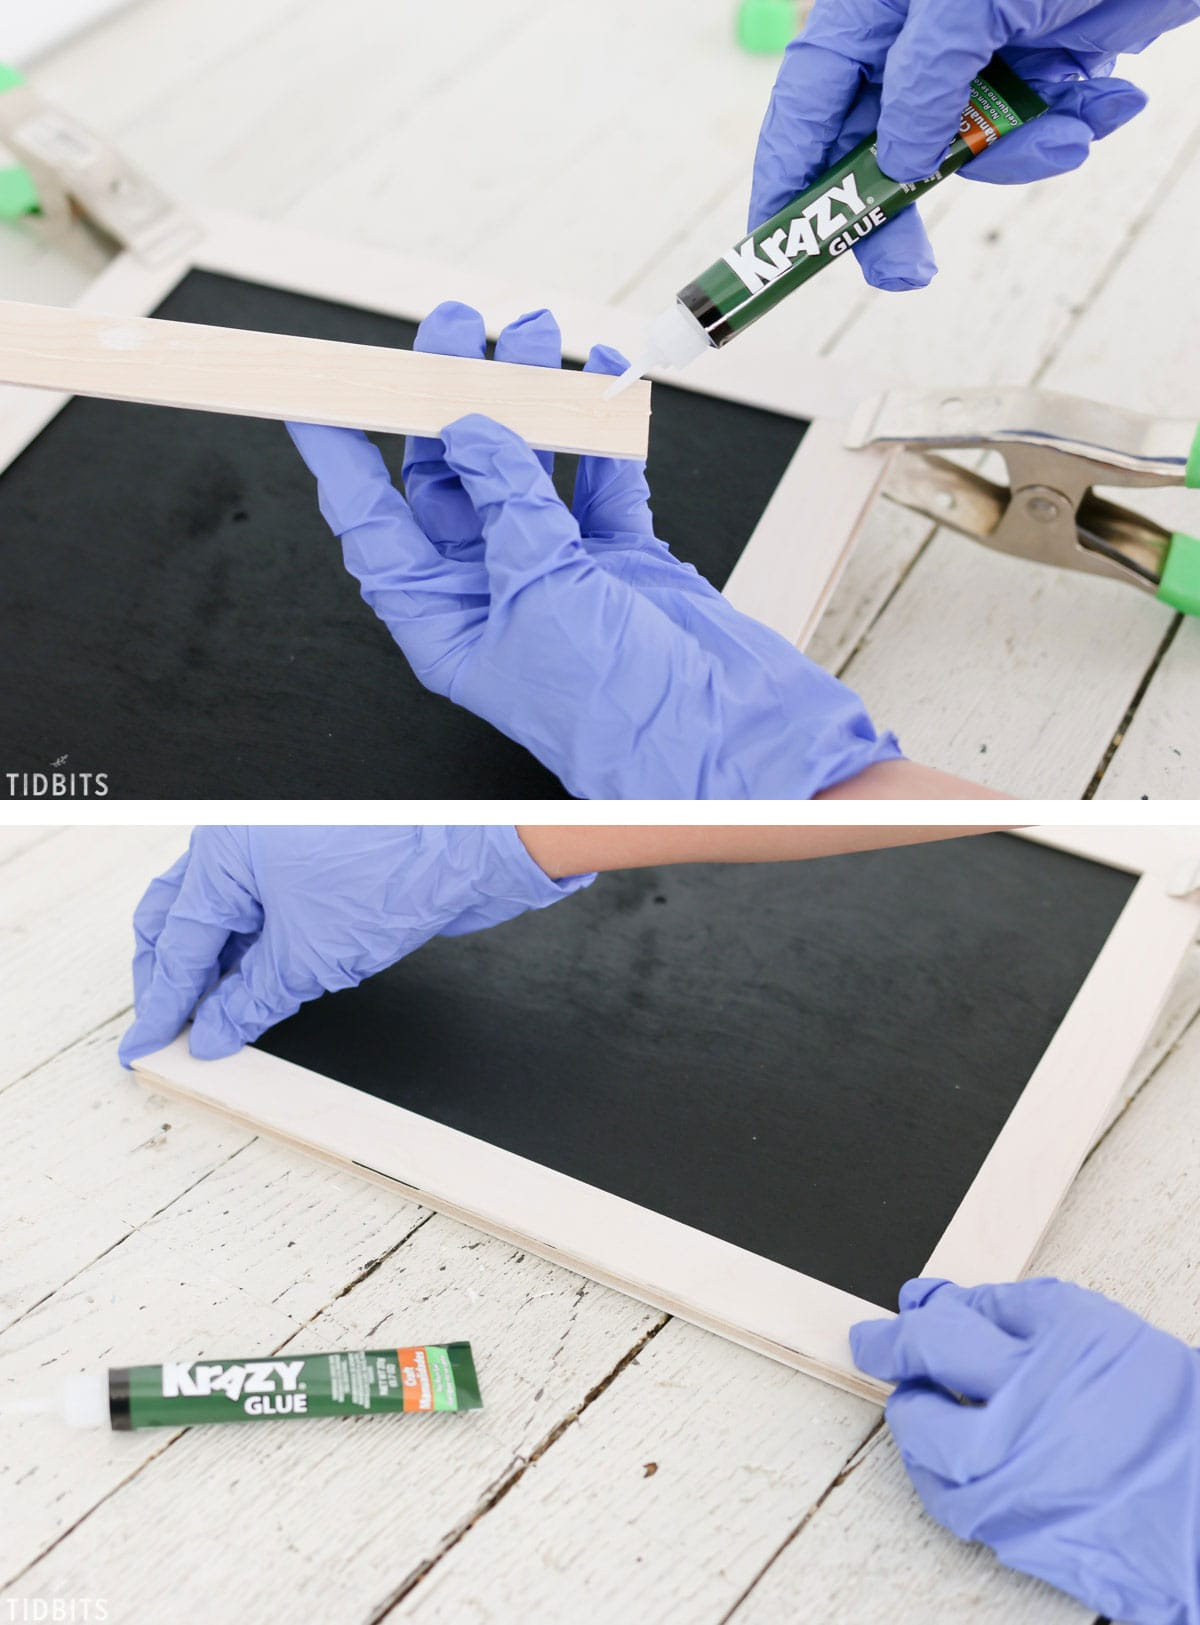 Easy DIY reversible mini chalkboard and whiteboard, by TIDBITS.